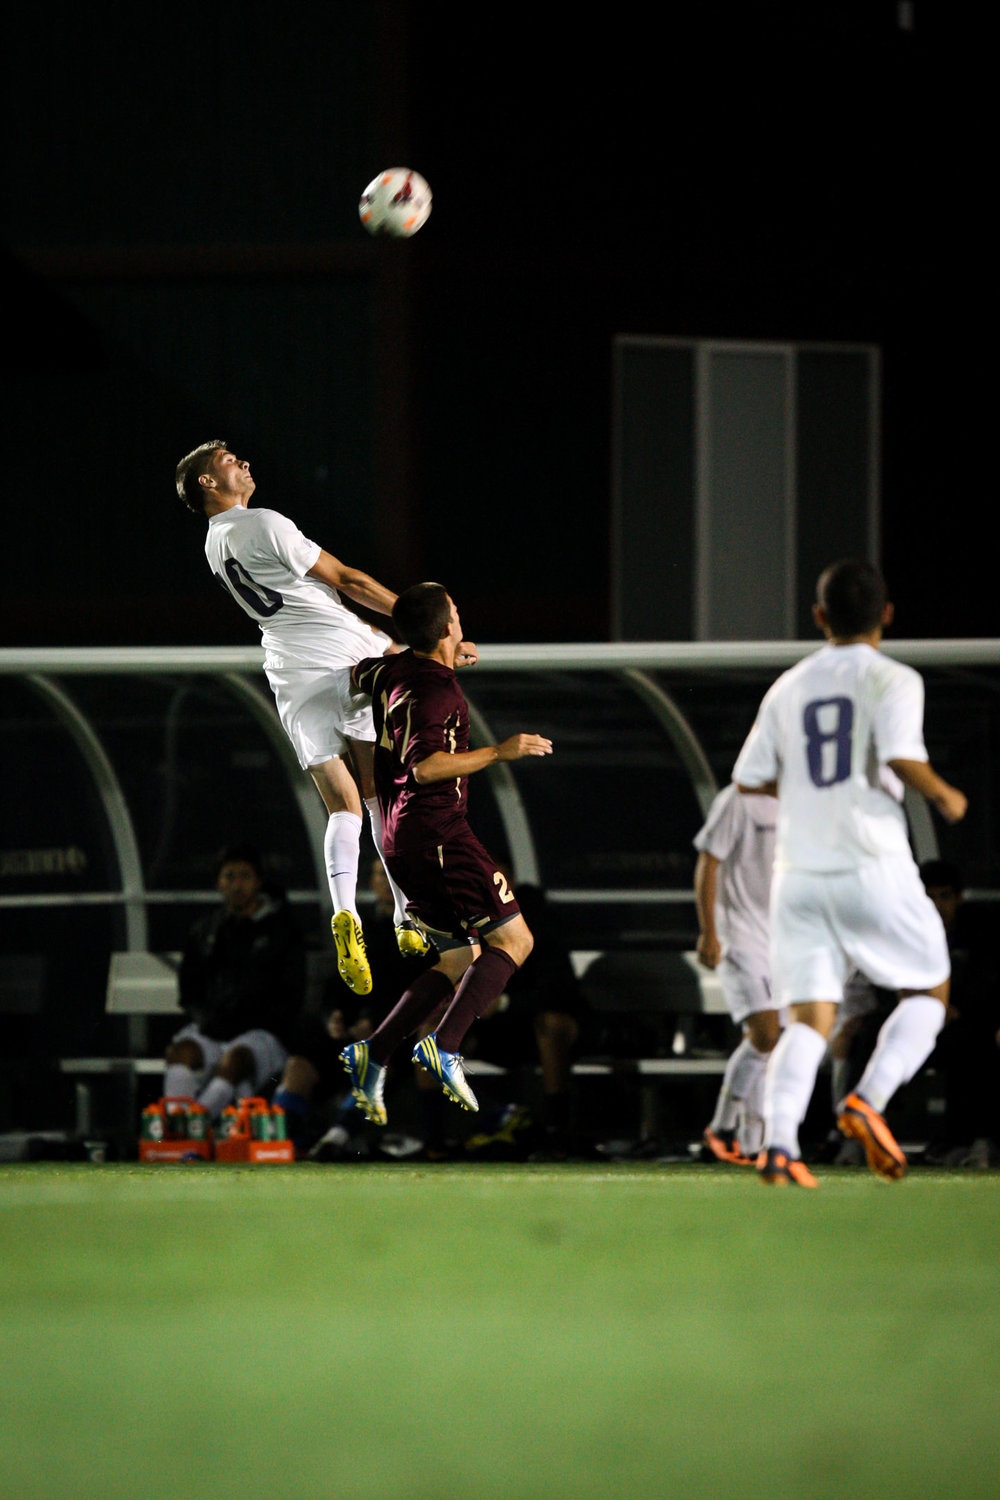 University of Washington Huskies Men's Soccer Forward Kyle Coffee Header against Seattle Pacific University